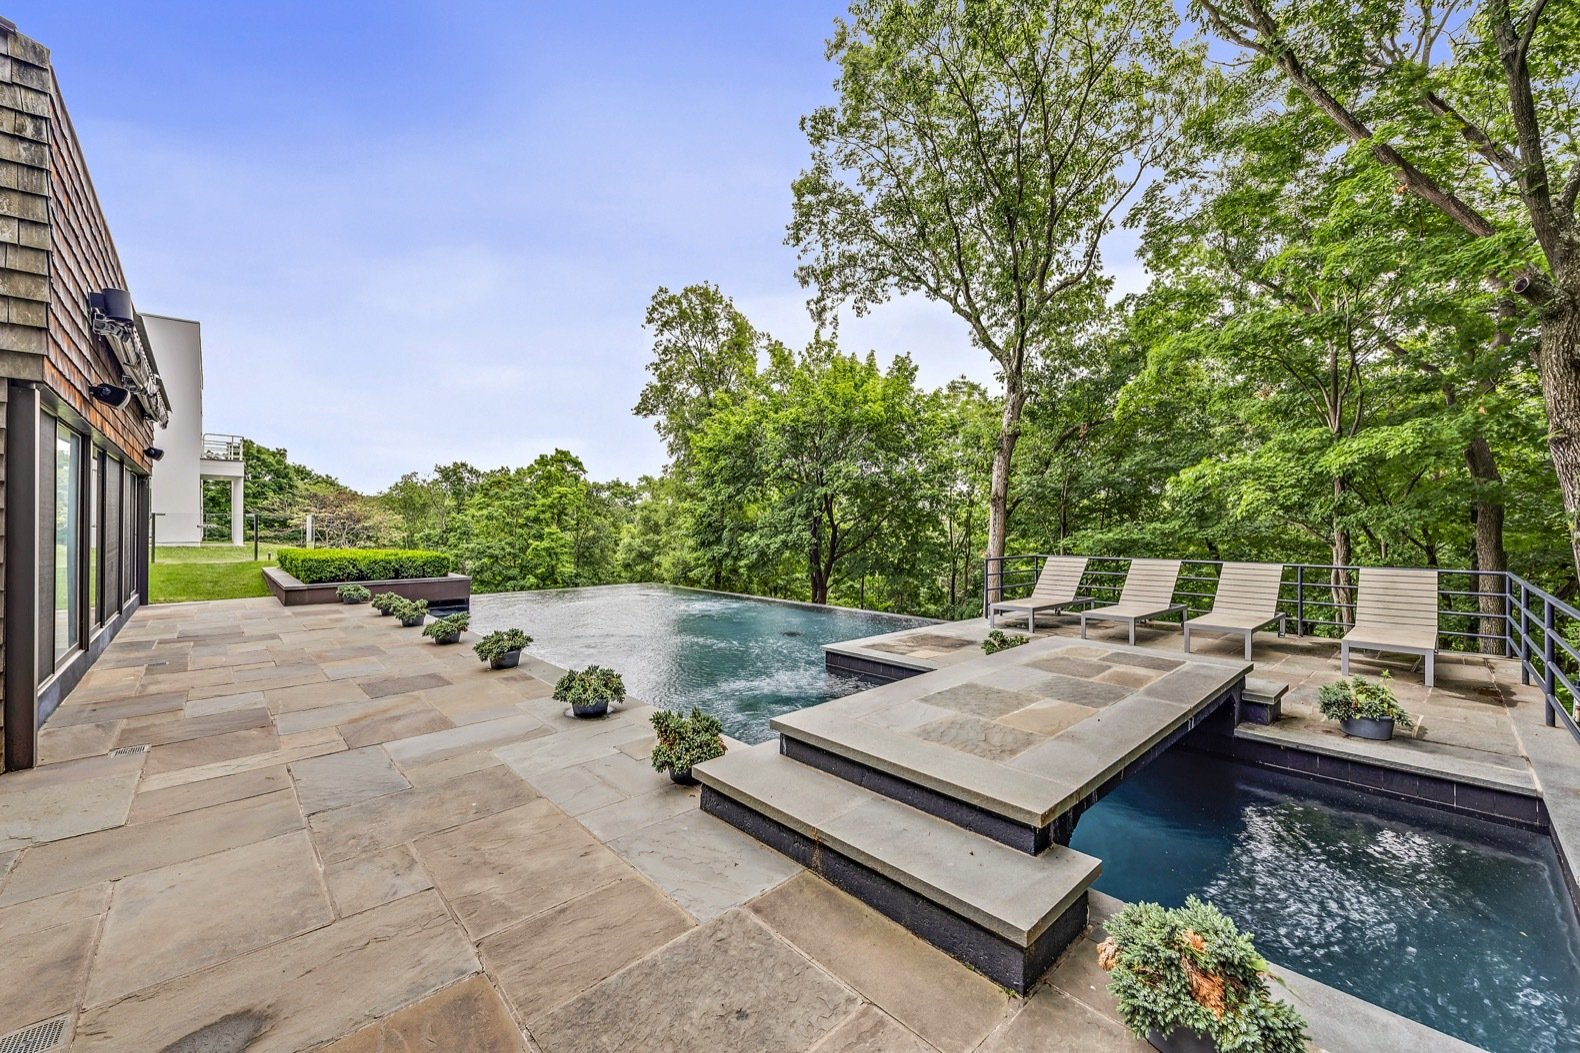 Outdoor, Stone, Back Yard, Trees, Infinity, Grass, Large, Large, Raised Planters, Swimming, Hanging, Horizontal, Shrubs, Metal, and Woodland The rear terrace boasts a recently built heated swimming pool with an infinity edge.  Outdoor Metal Stone Back Yard Hanging Photos